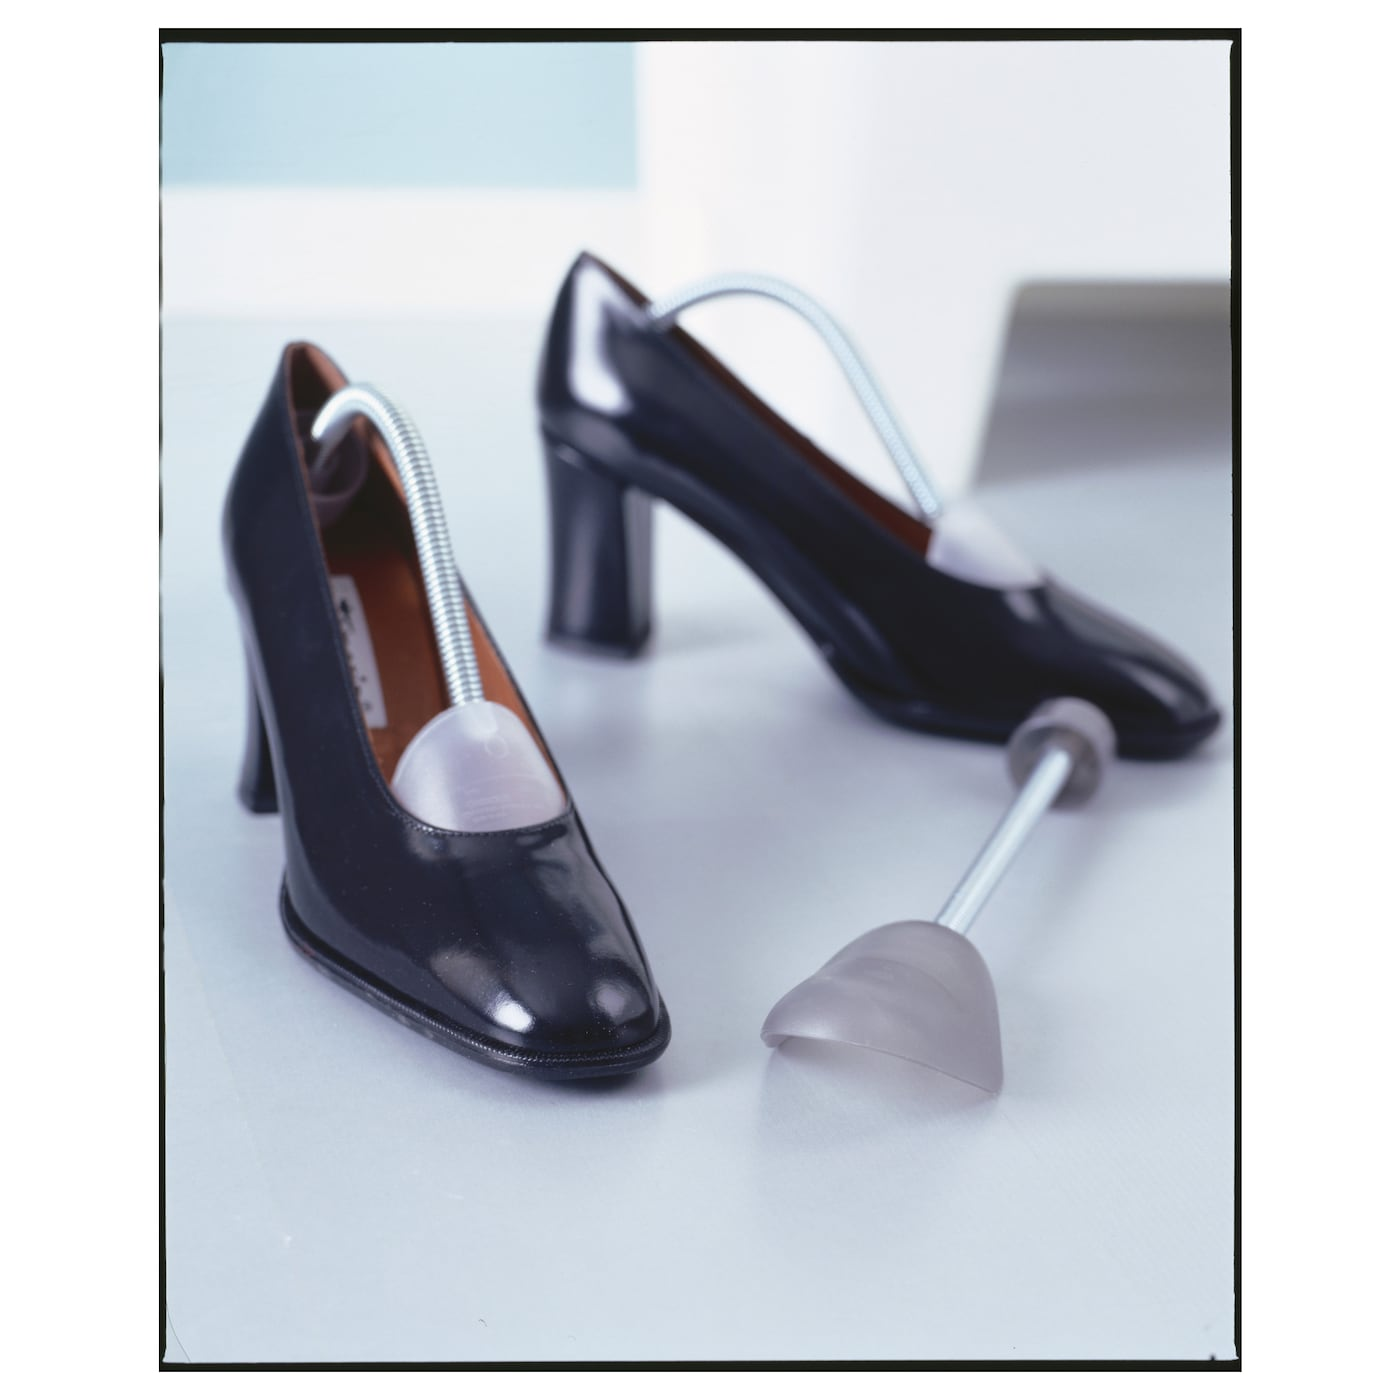 IKEA OMSORG shoe tree, small, 1 pair Helps shoes keep their shape. Helps shoes keep their shape.